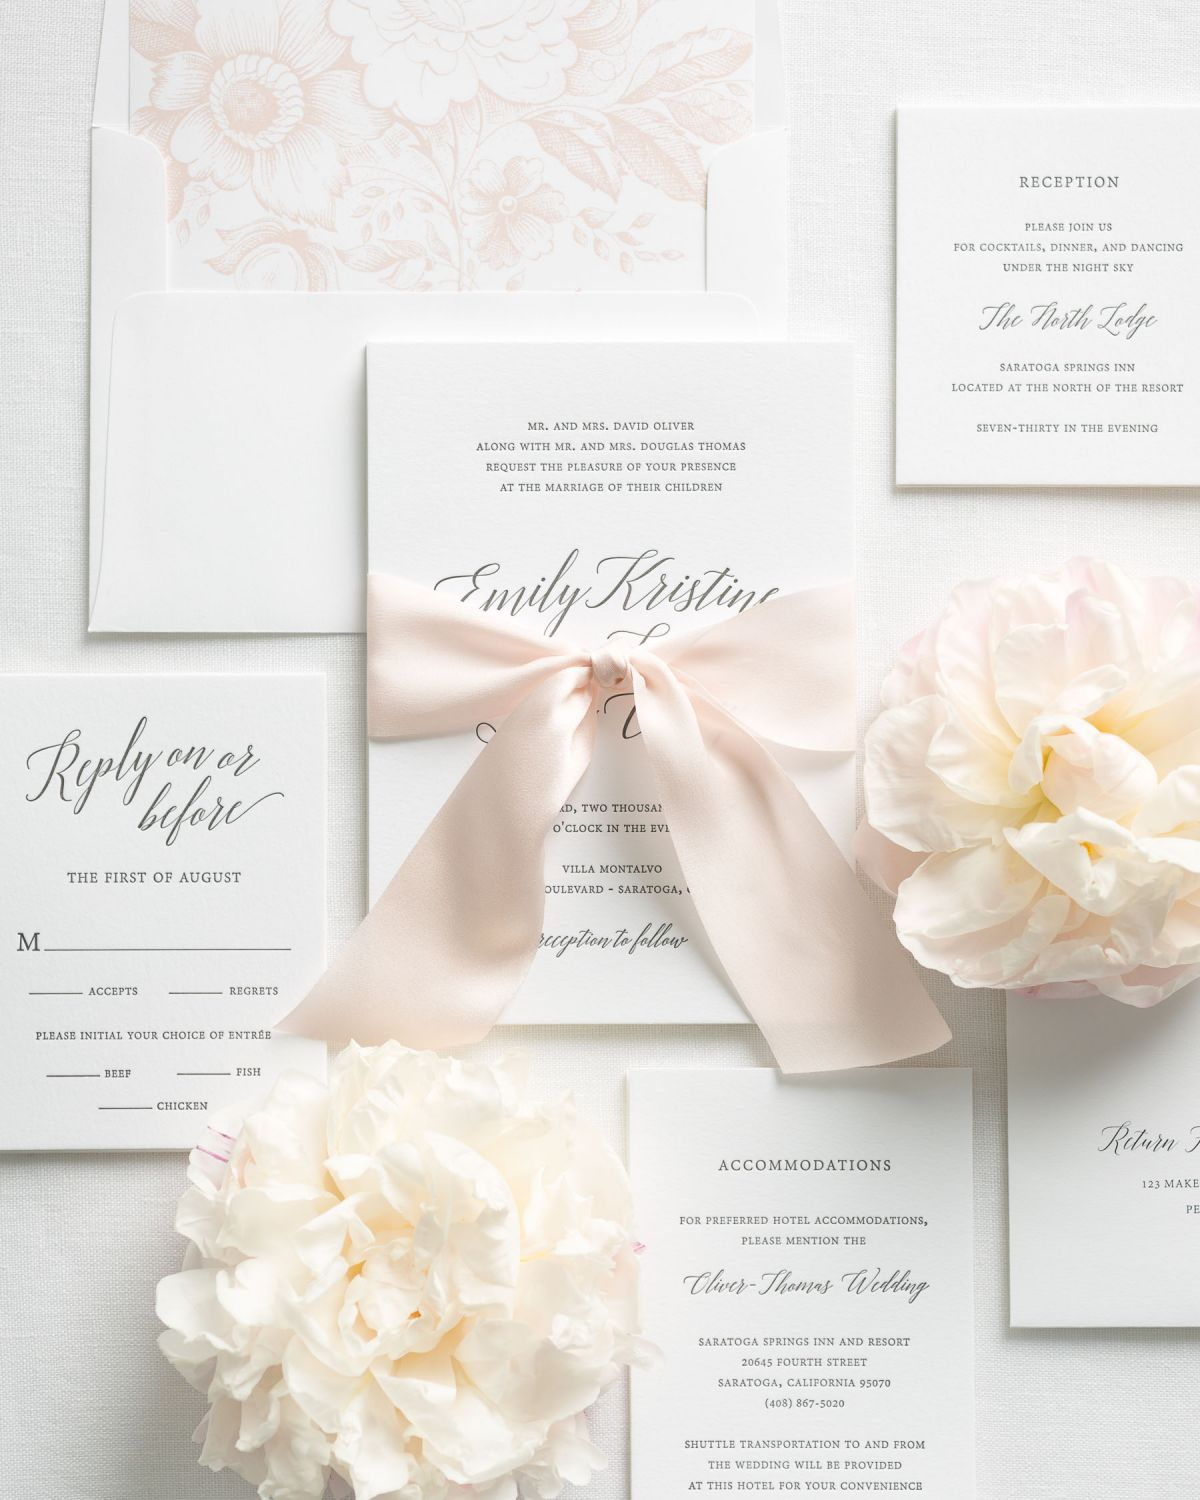 Blush Pink Wedding Invitations with Letterpress Printing